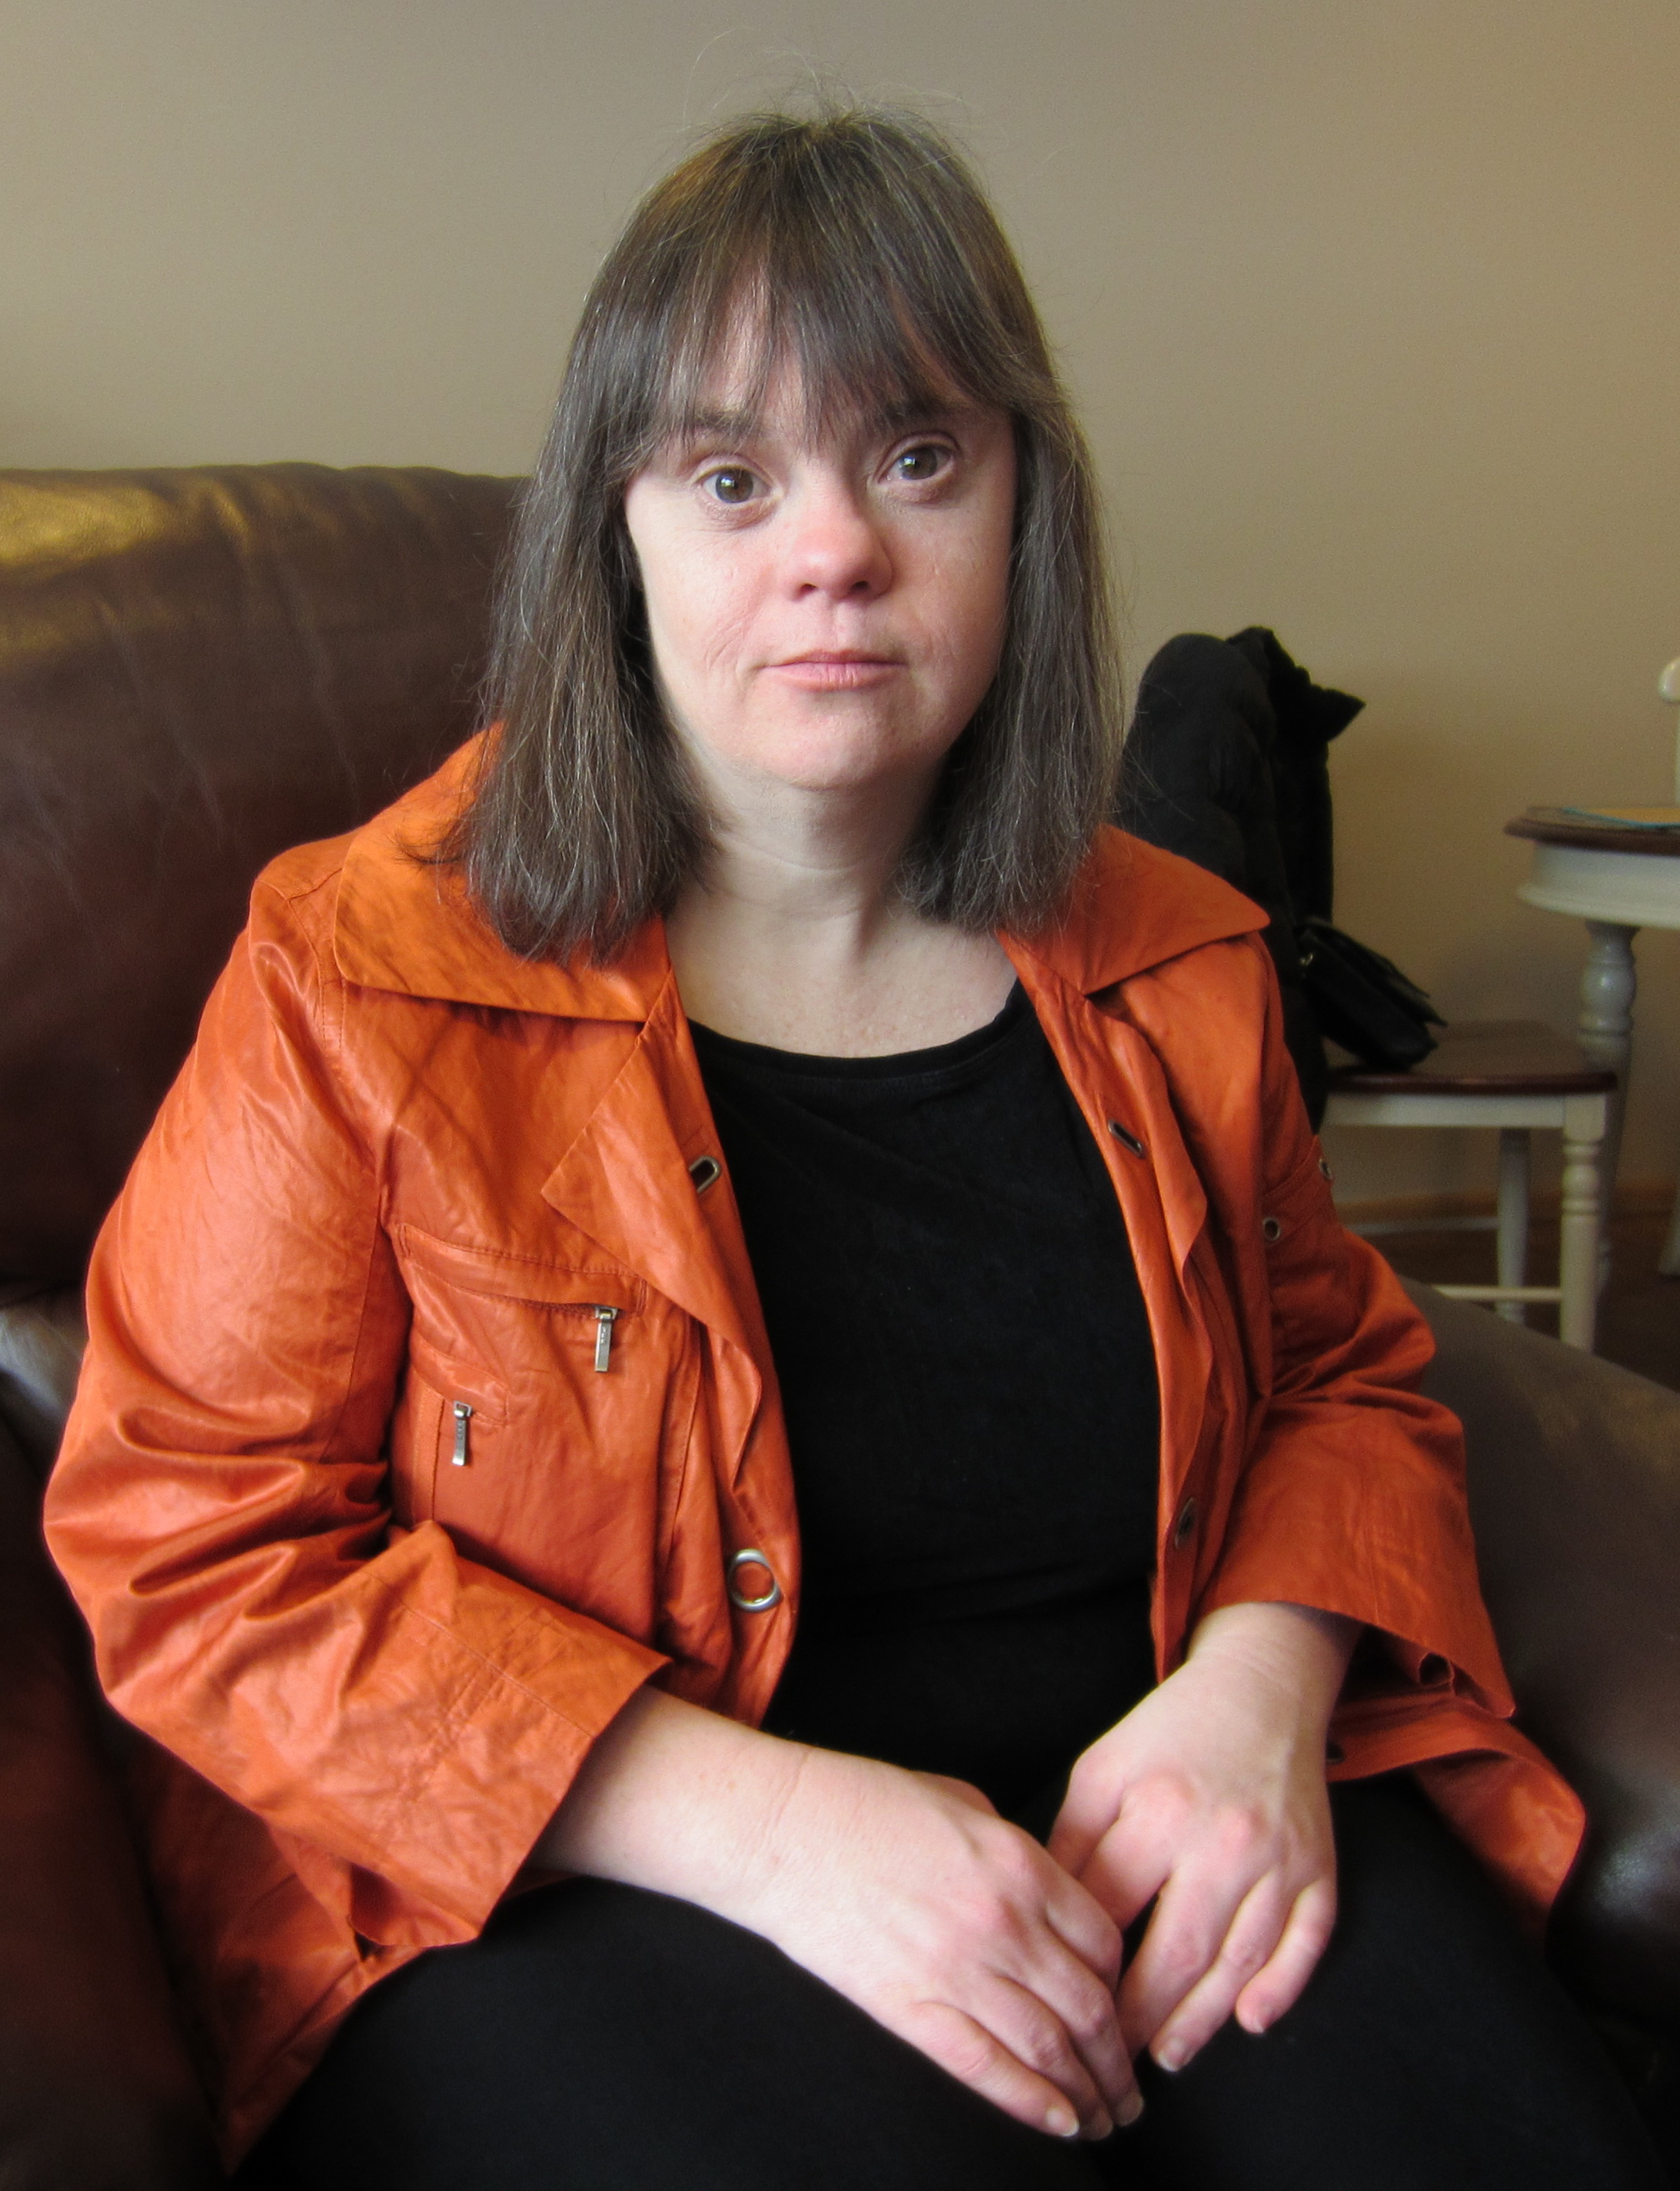 Peggy's Dreams: Living life with Down syndrome